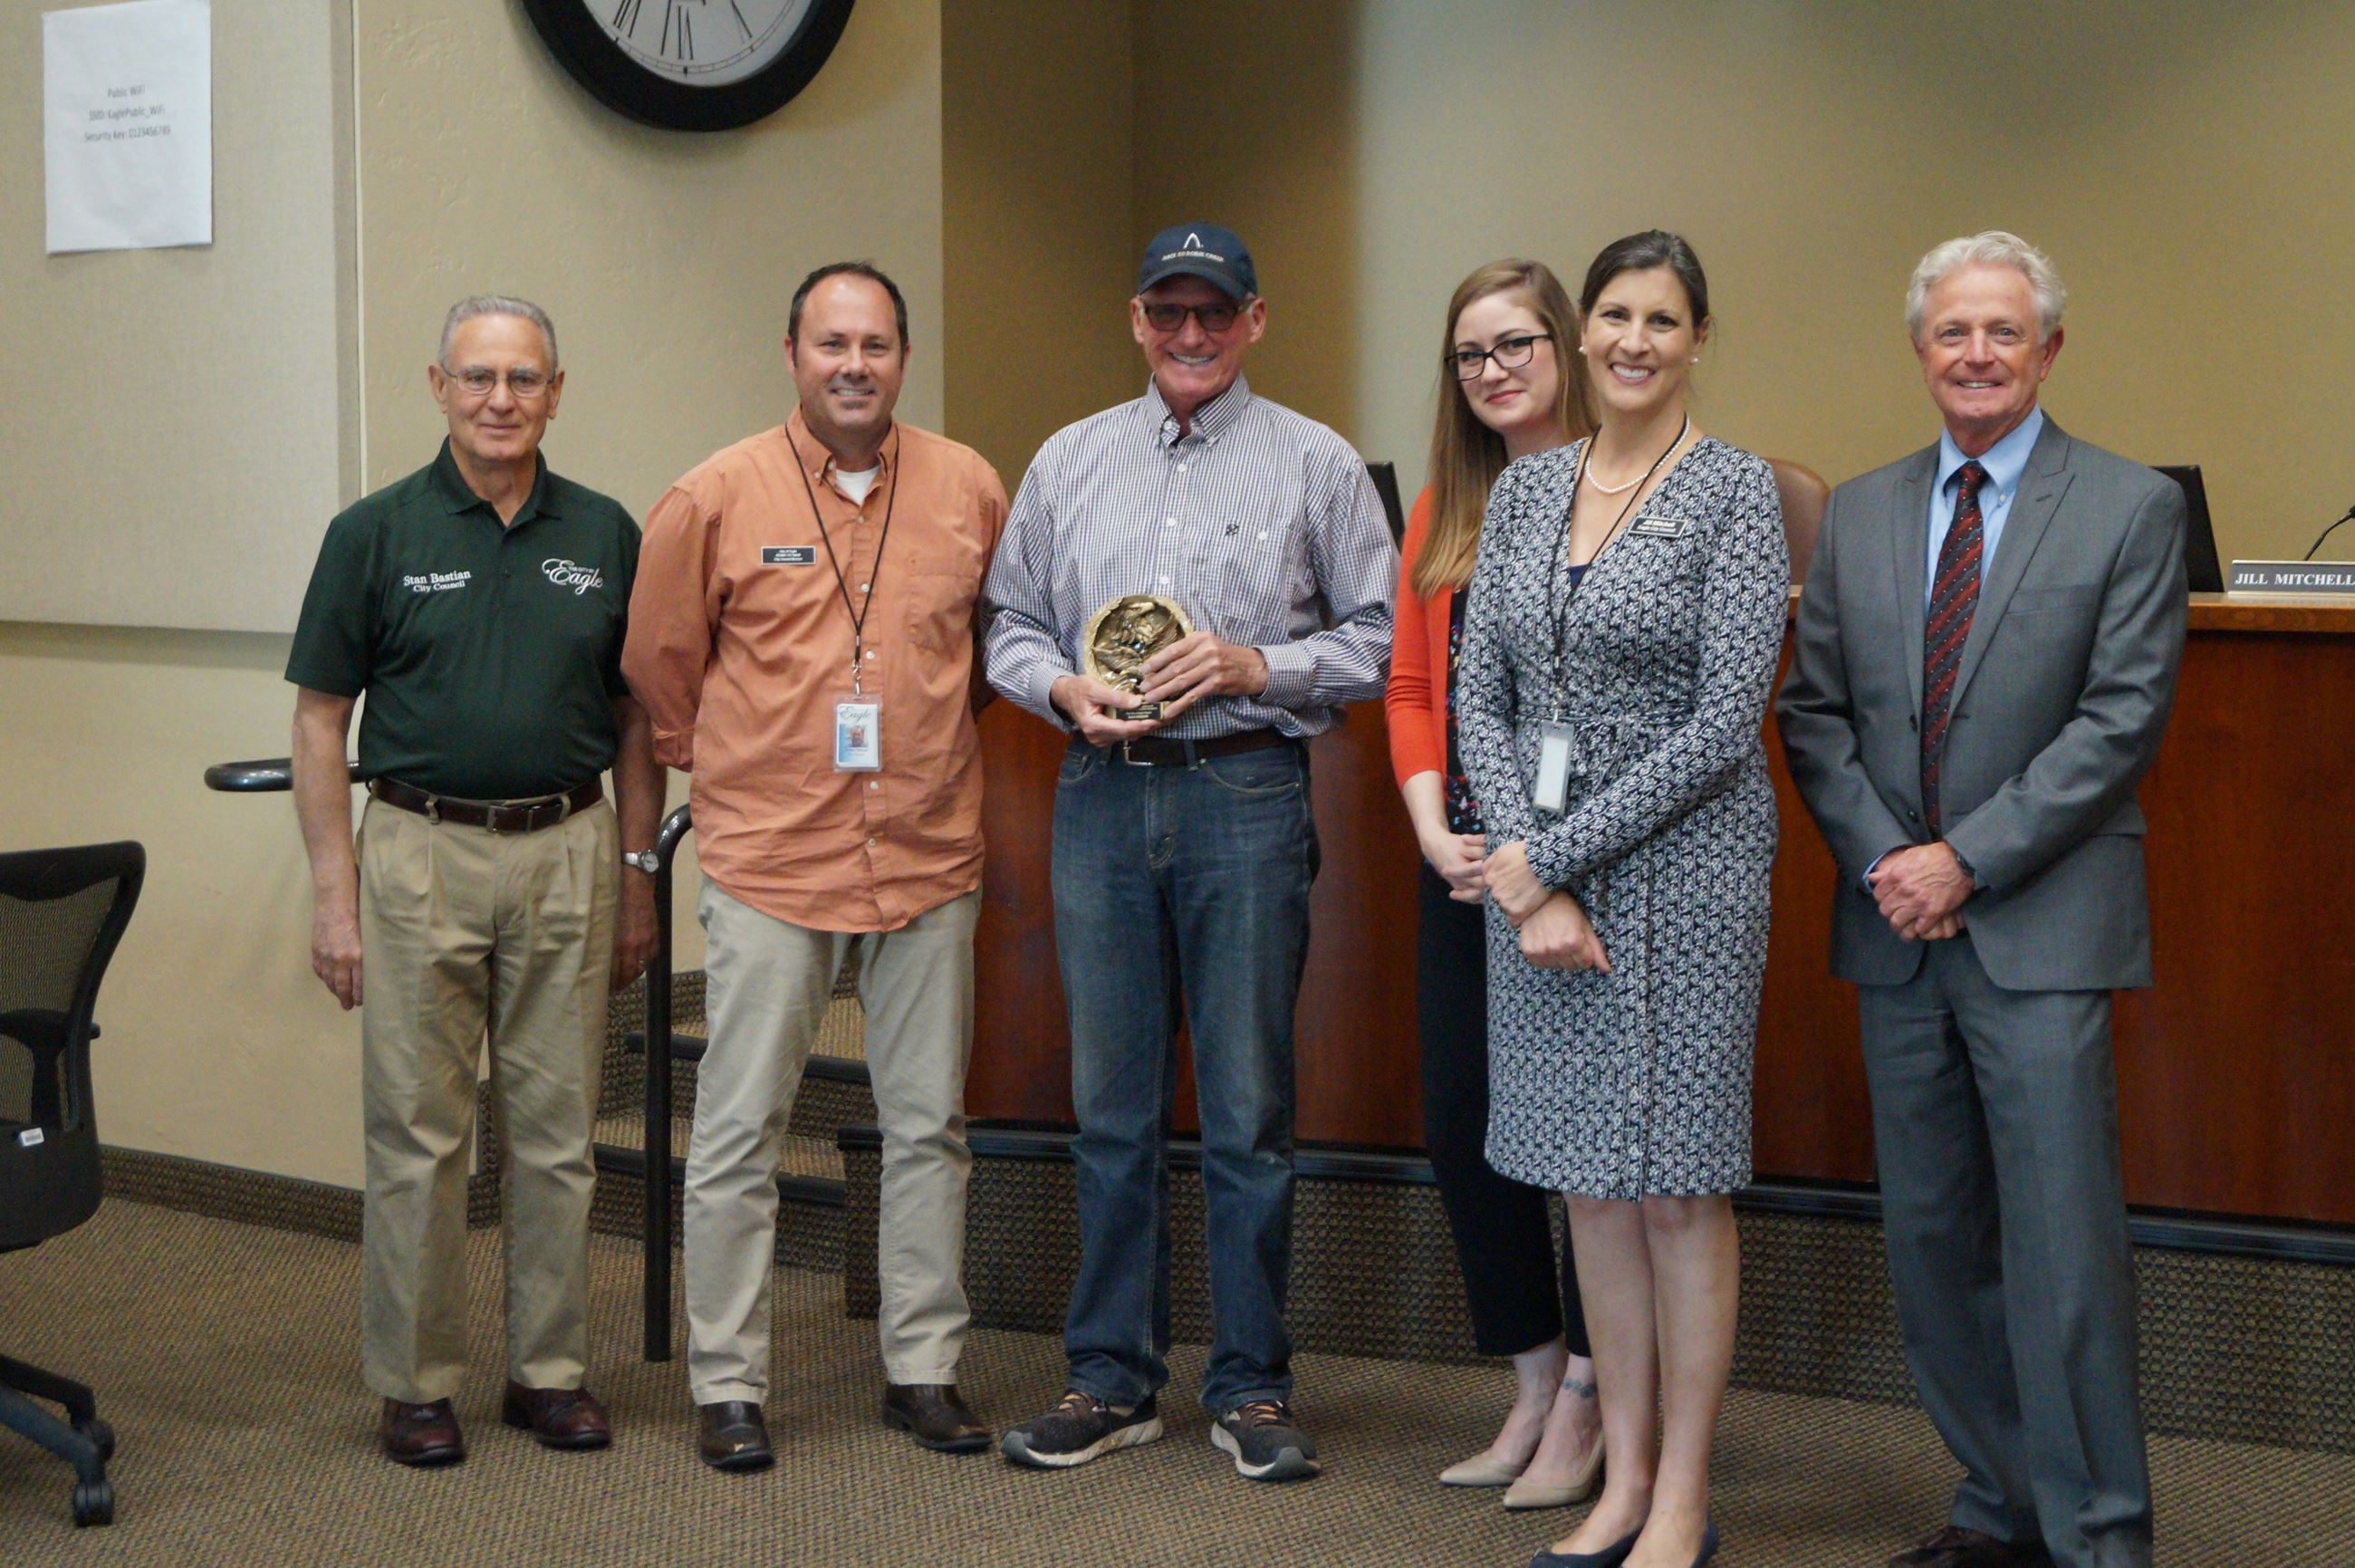 Mayor Stan Ridgeway and City Council members present Dan Friend with a service recognition award for